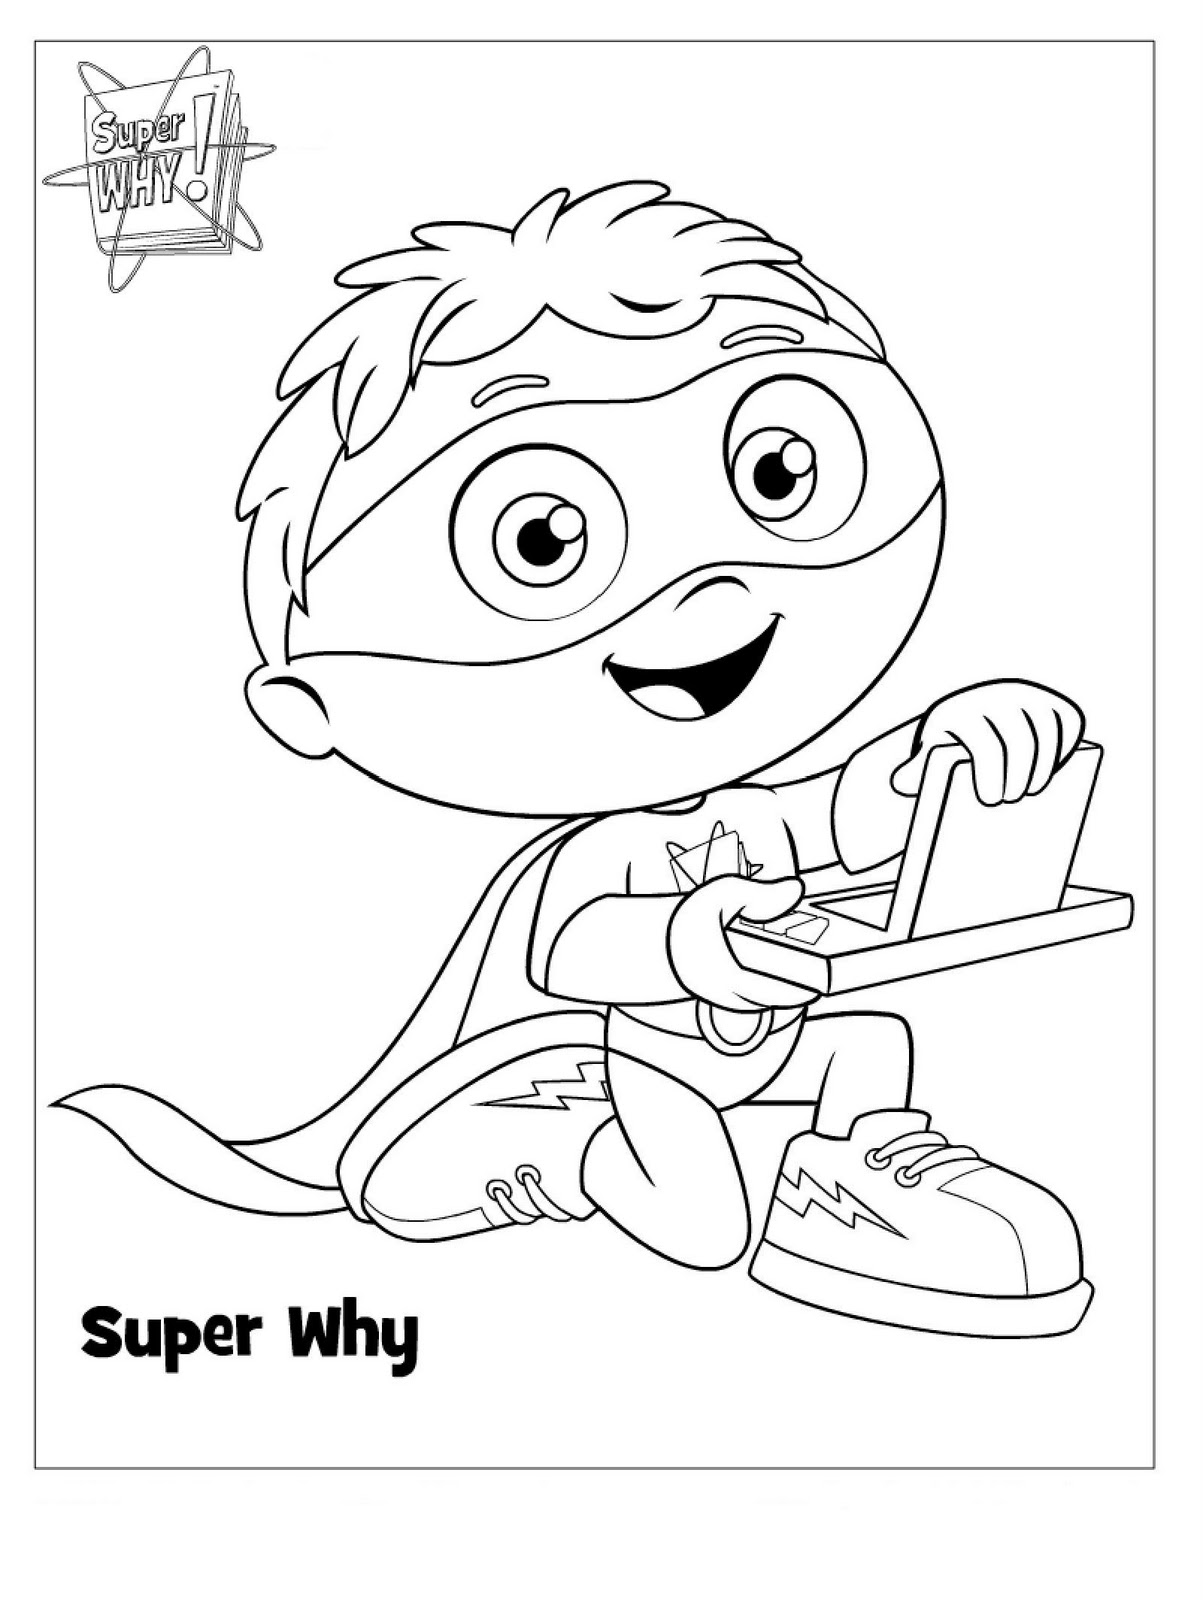 free downloadable coloring pages | Sarah with an H: Super Why Party